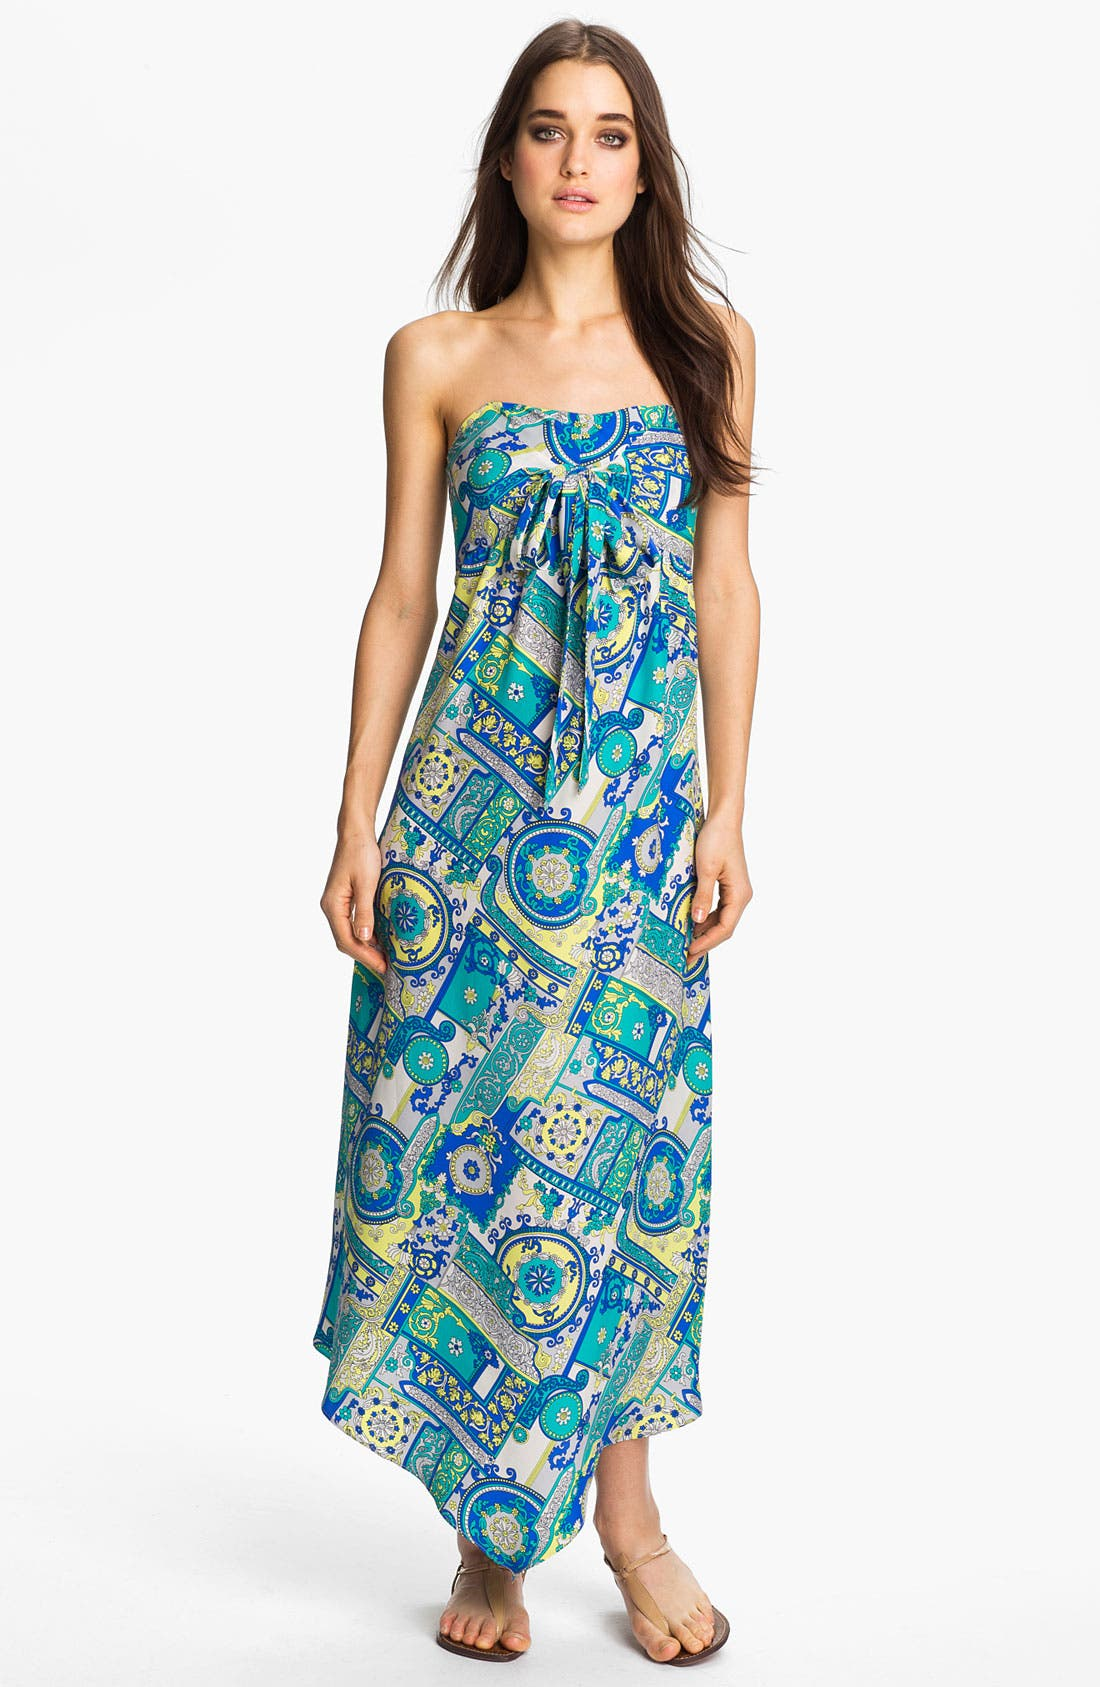 Alternate Image 1 Selected - ALICE & TRIXIE 'Savannah' Convertible Tie Silk Maxi Dress